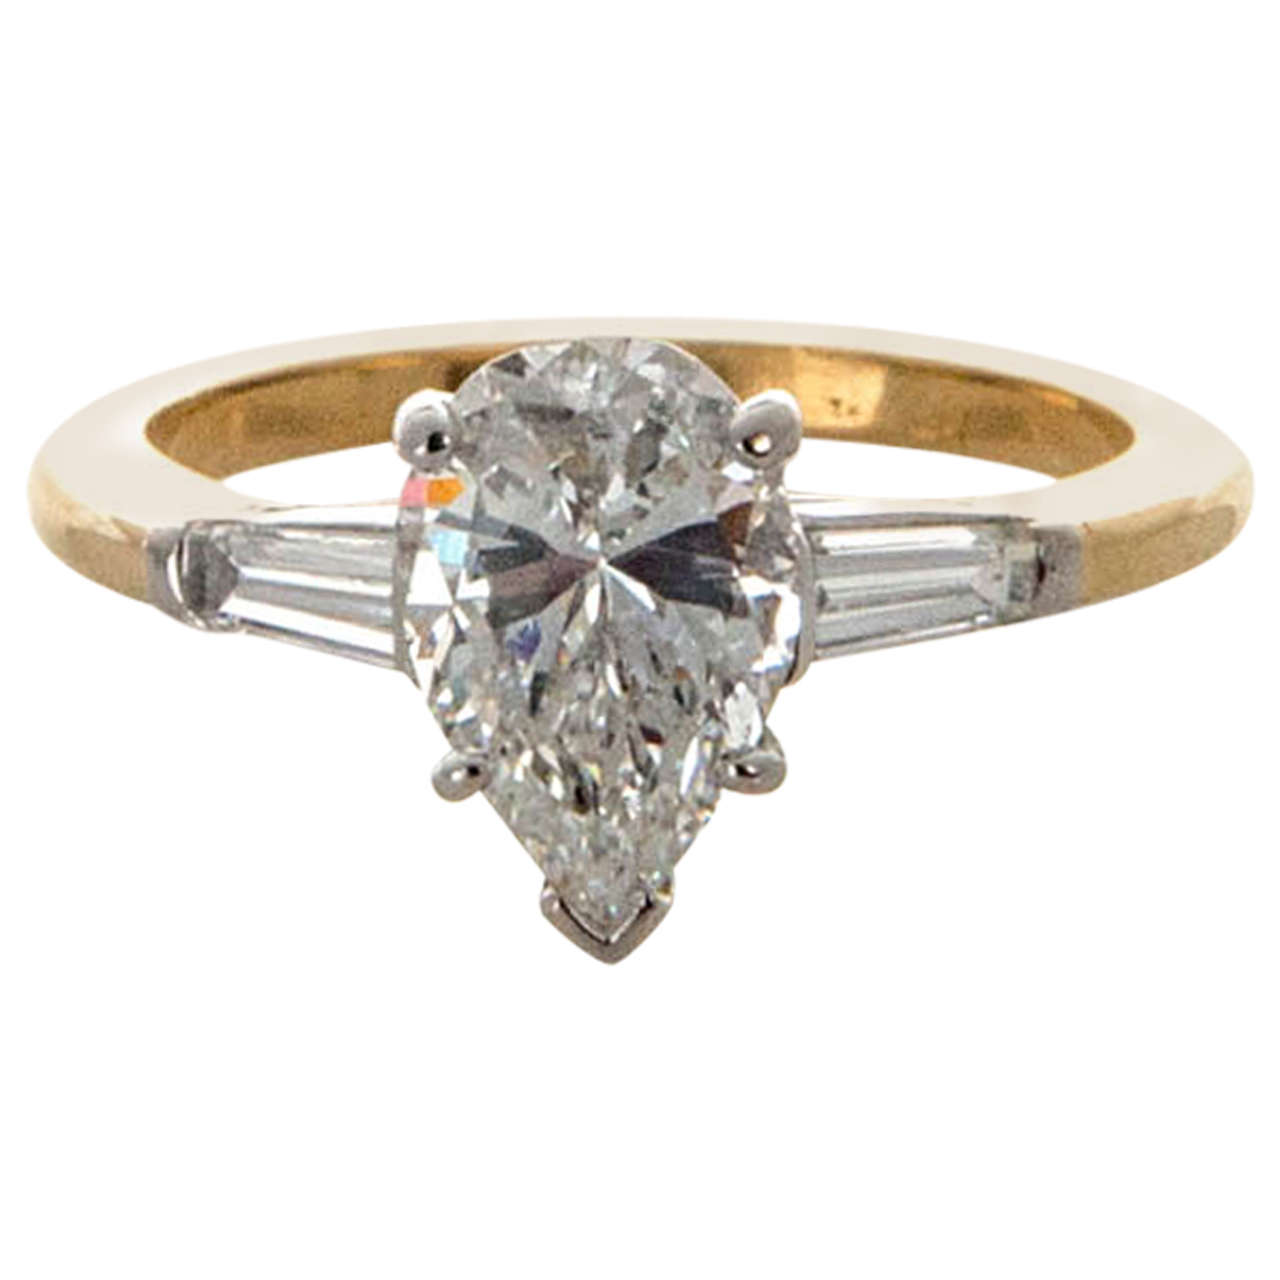 Oscar Heyman Pear Shaped Diamond Yellow Gold Platinum Ring 1